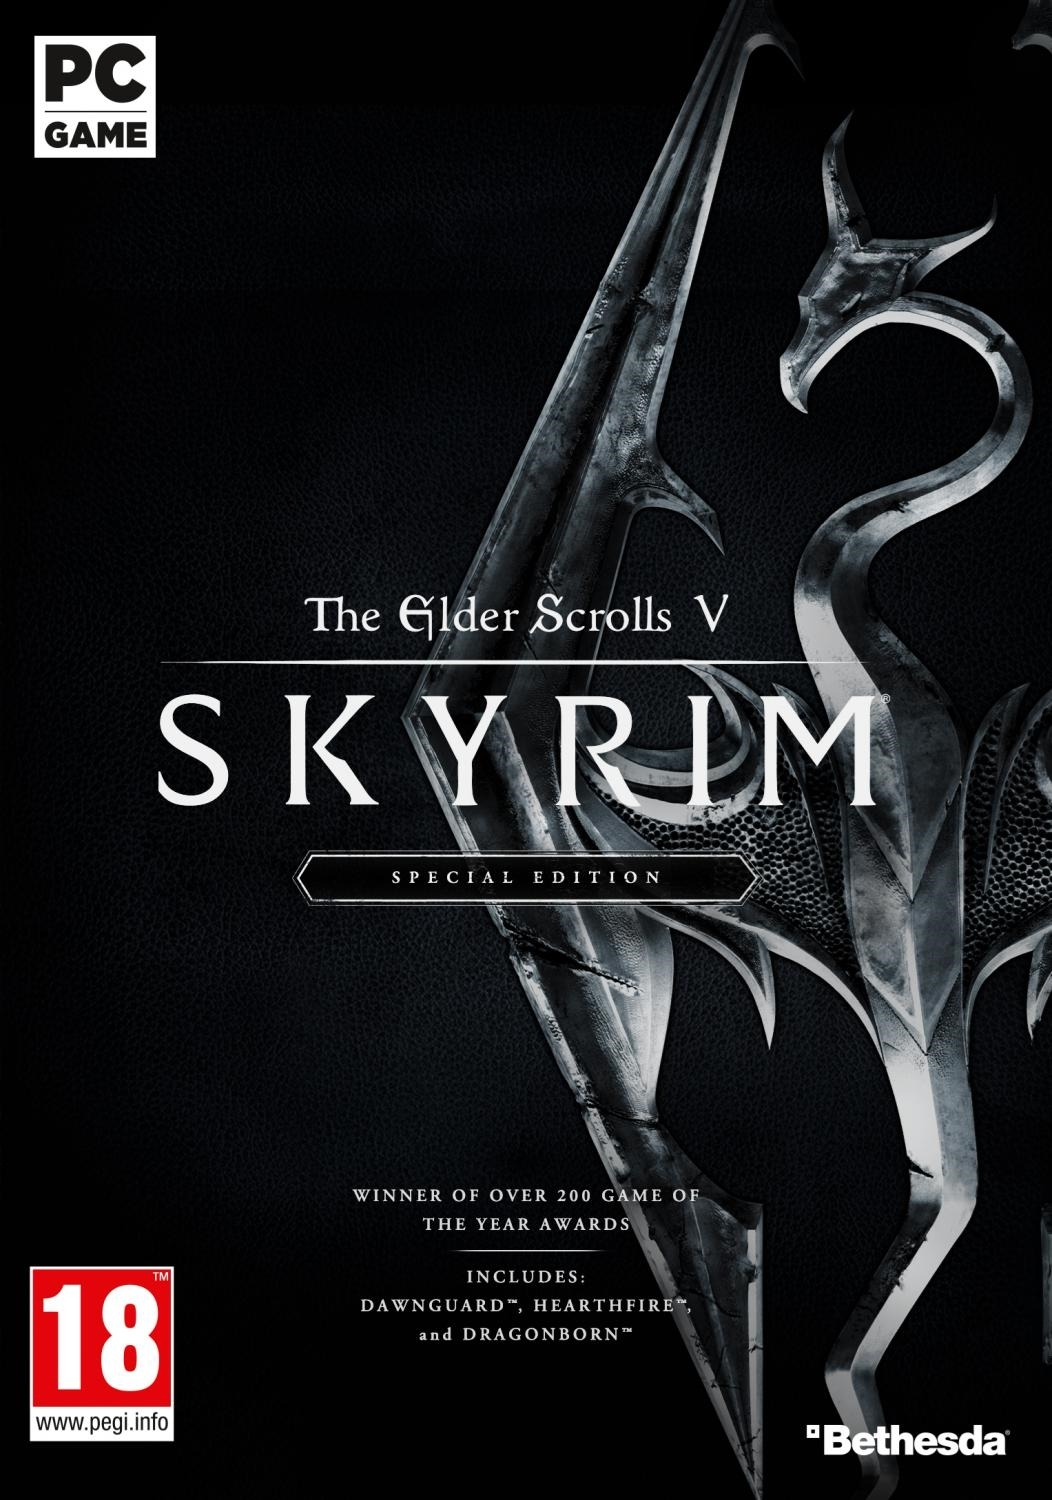 The Elder Scrolls V Skyrim: Special Edition